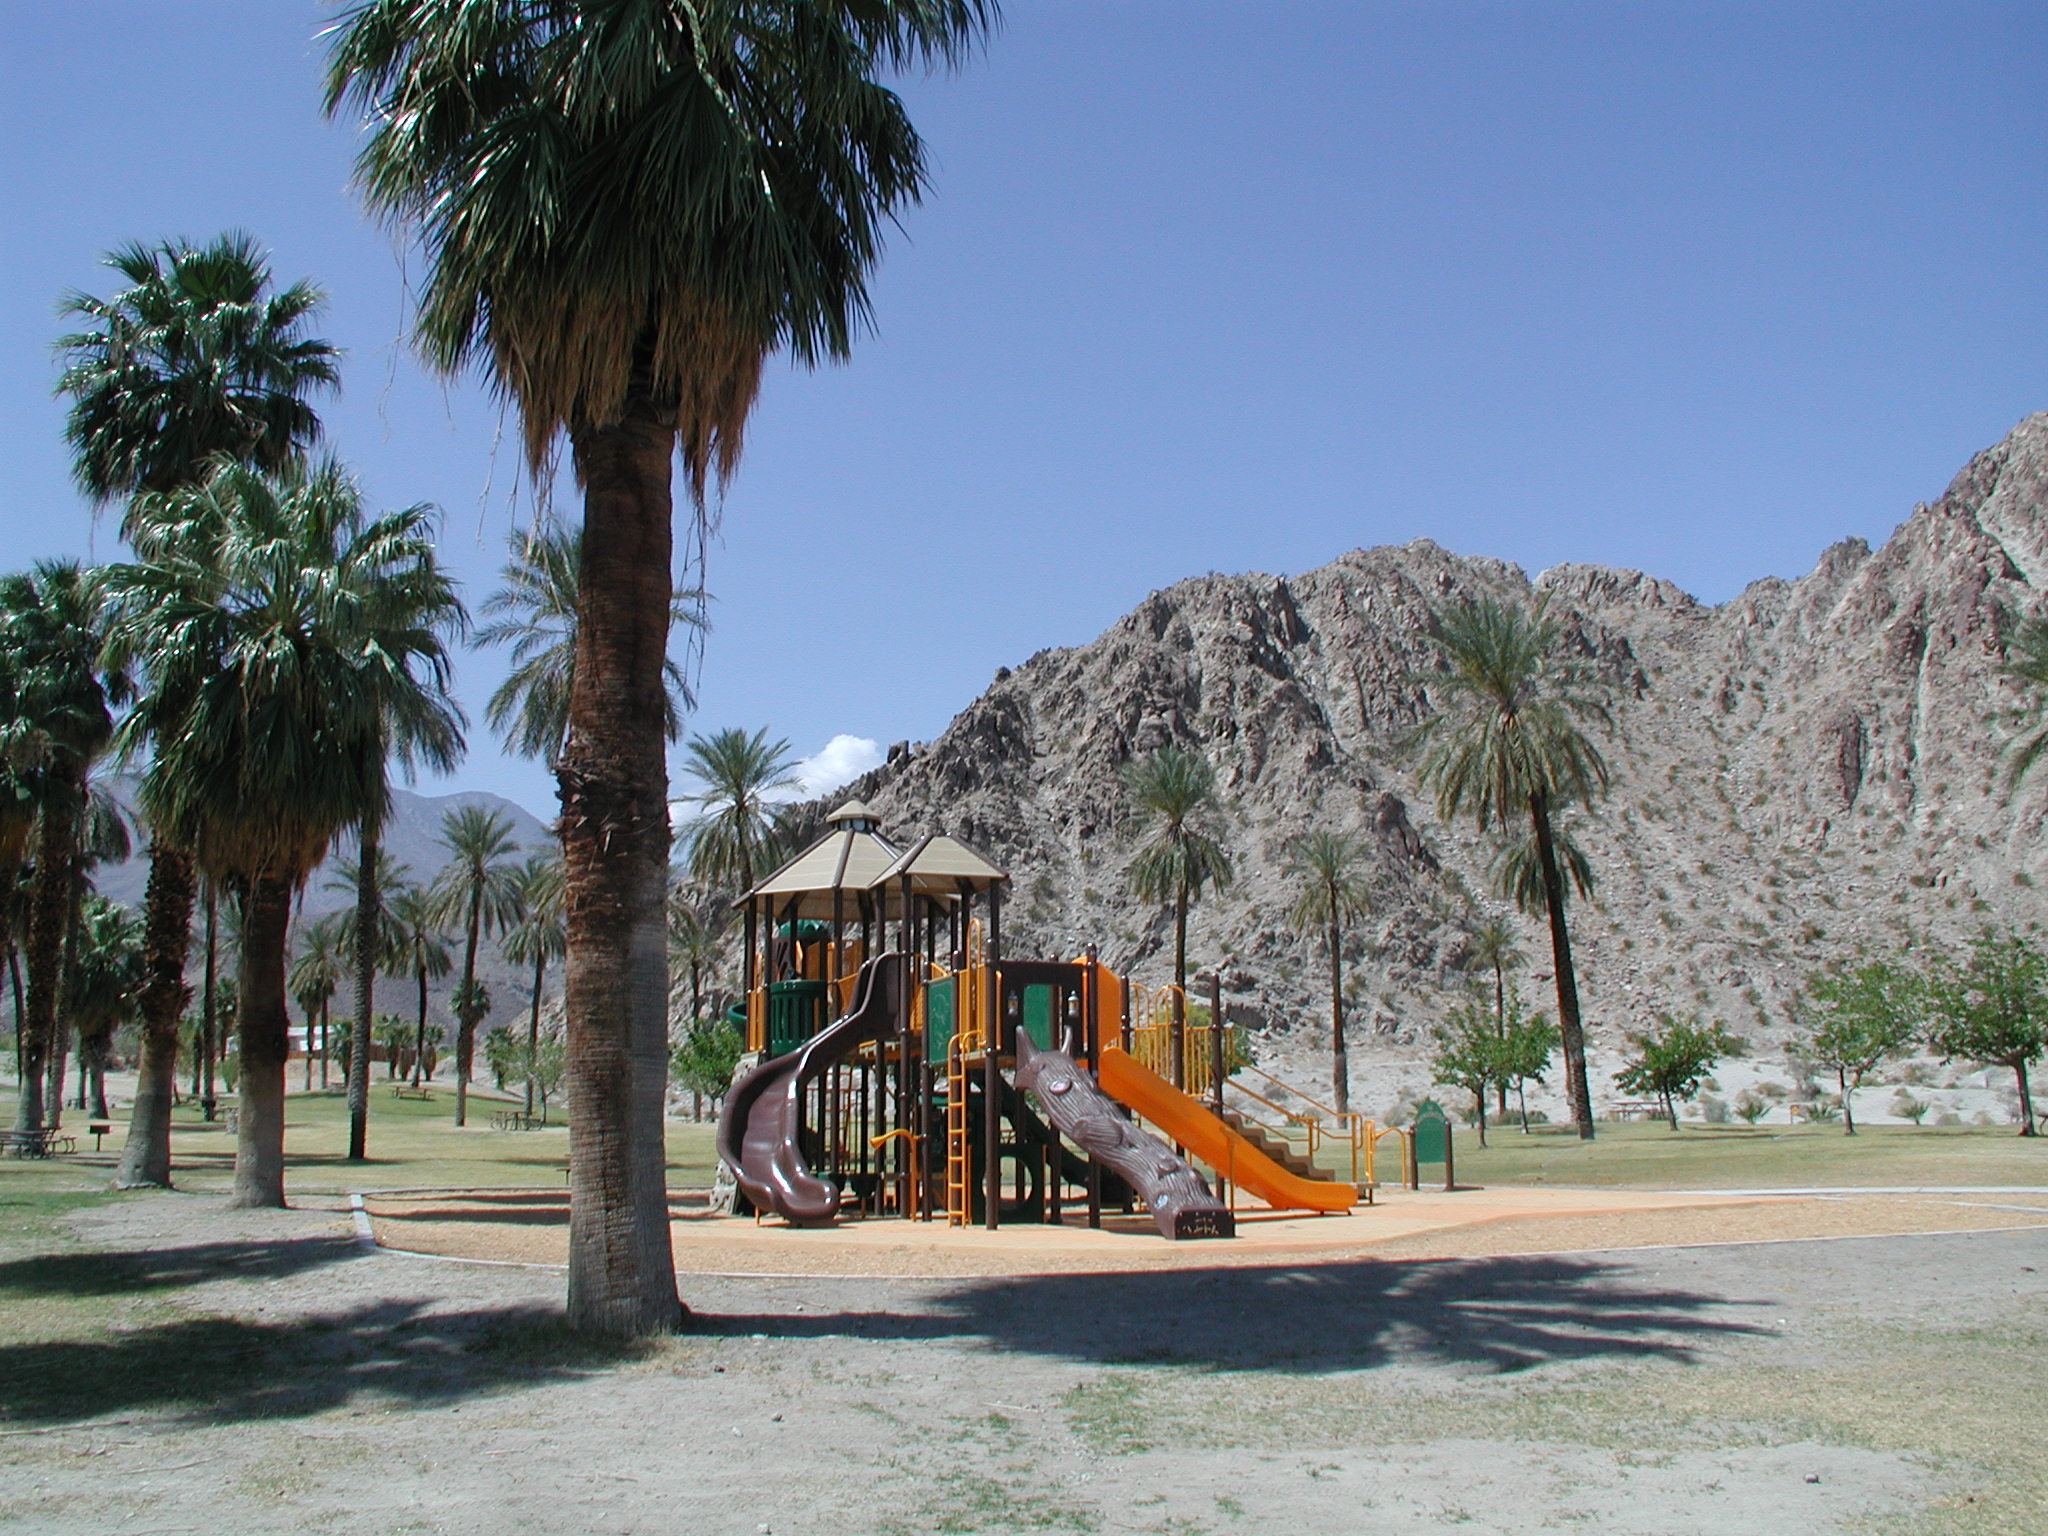 Playground at Cahuilla